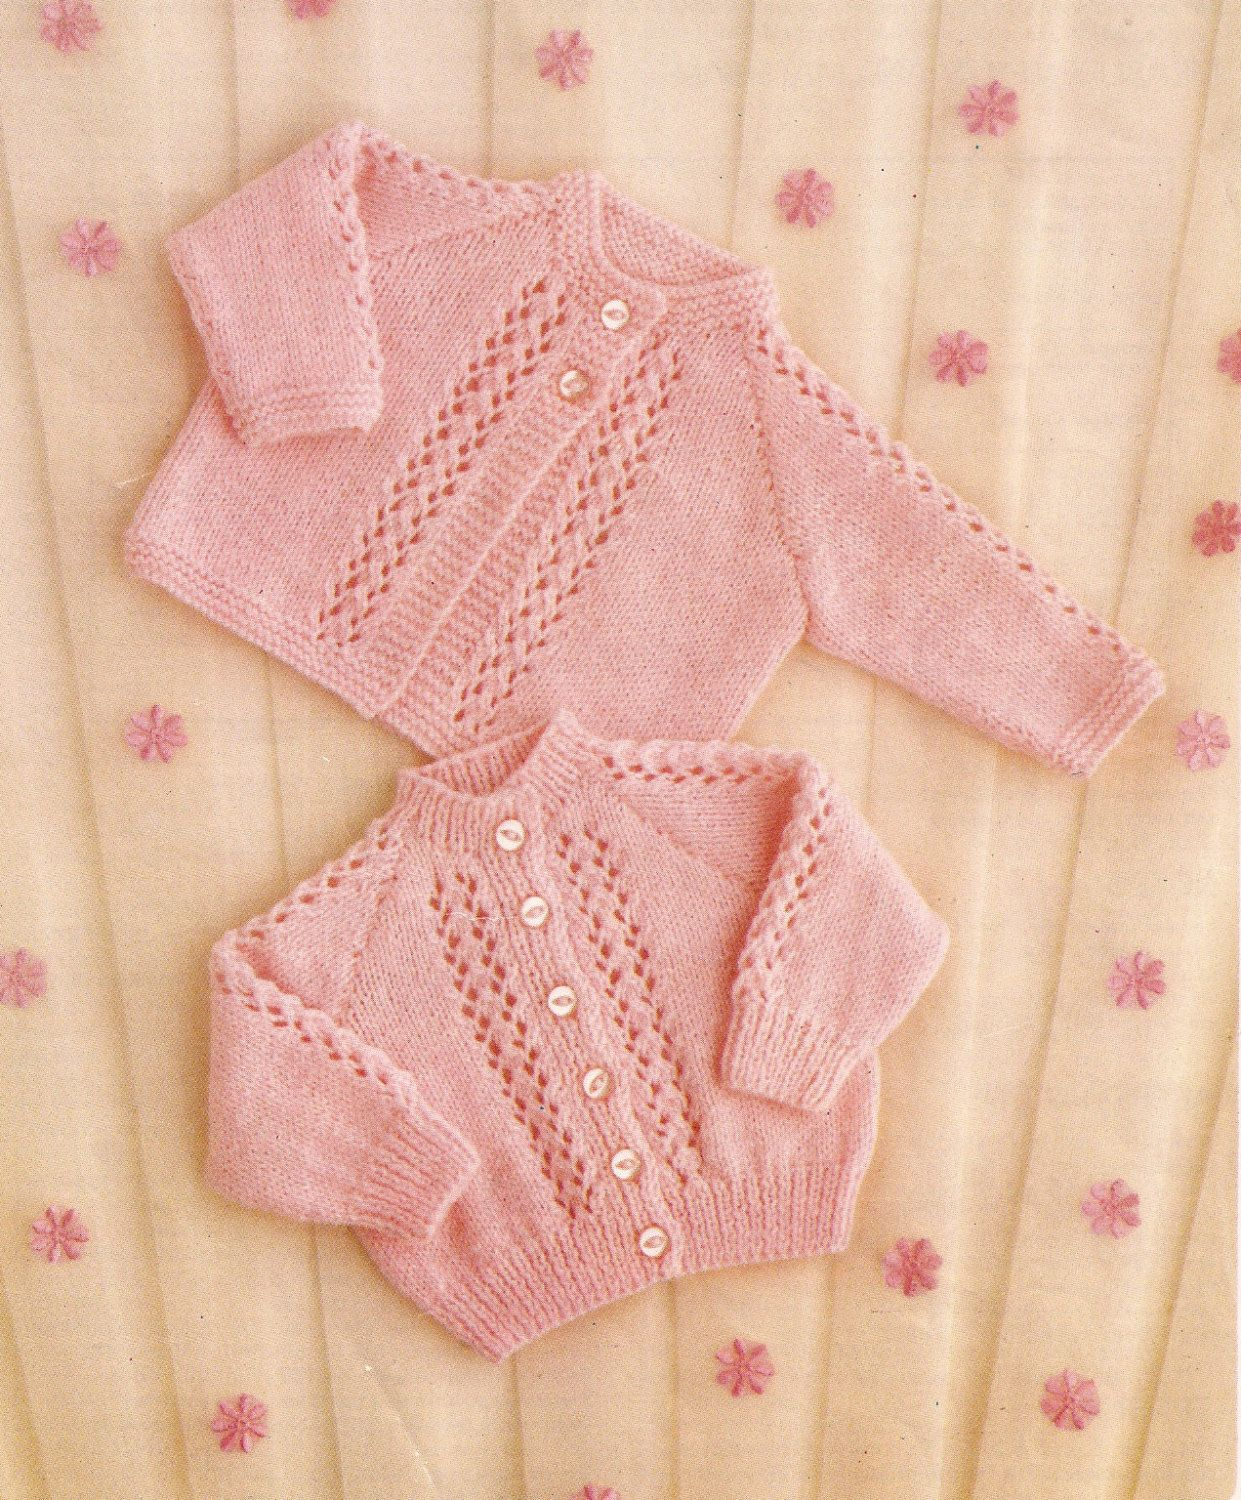 a01bc13e49eb PDF Knitting Pattern Baby Knitted Matinee Coat and Cardigan 16-20 ...